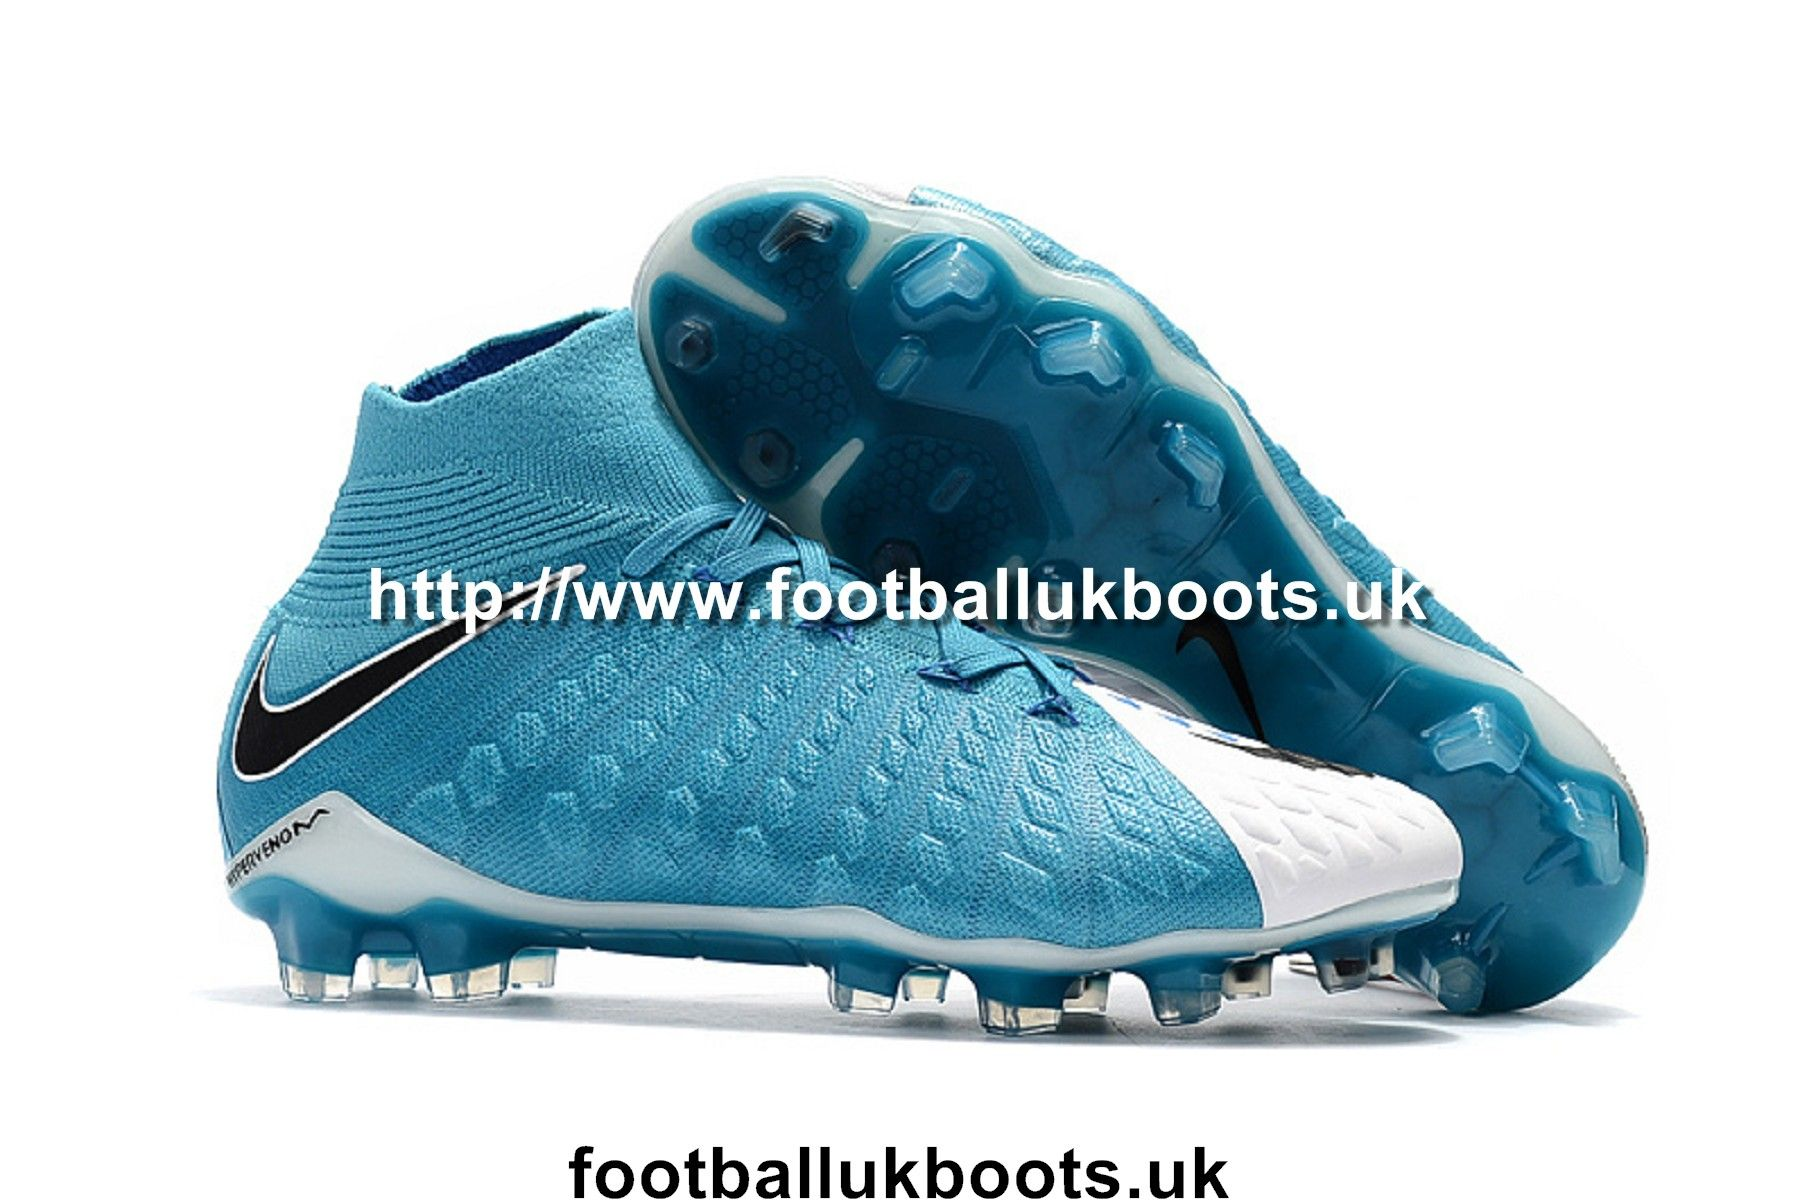 Cheap Nike Hypervenom Phantom III 3 DF FG Football Boots - White/Black/Photo